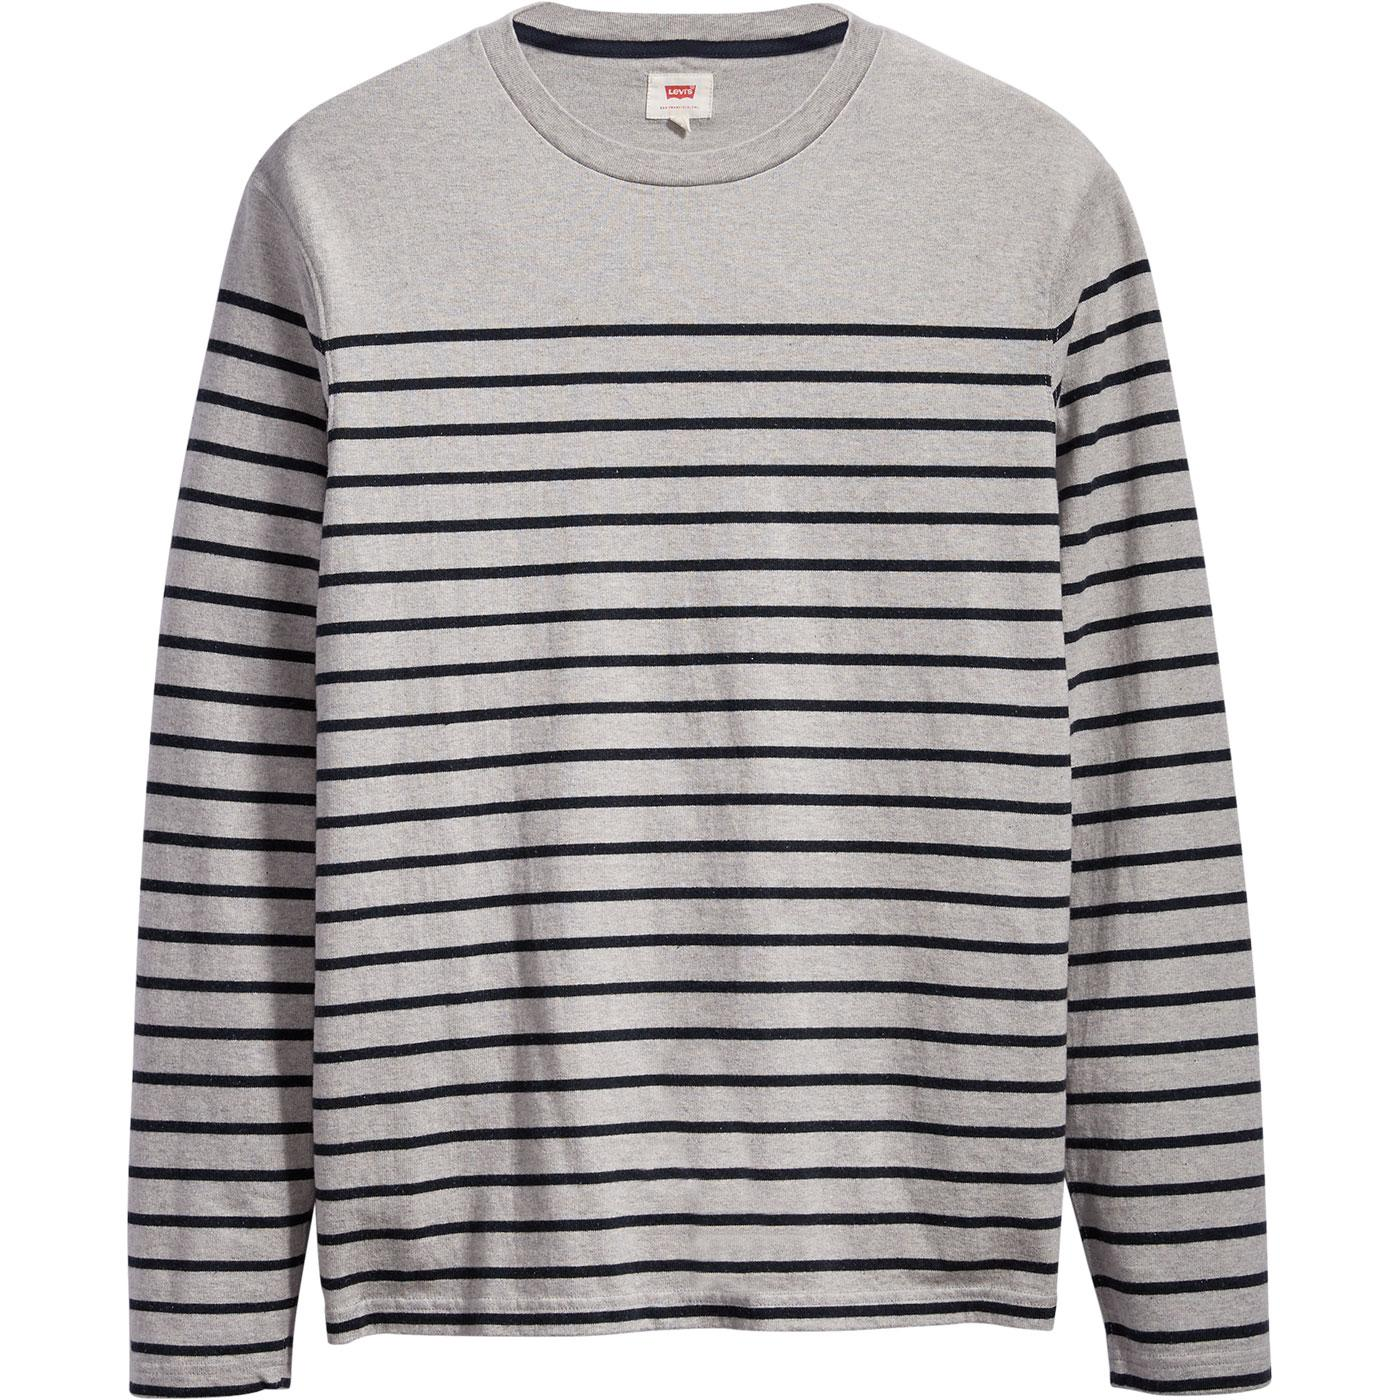 Mission LEVI'S Men's Retro 60s Mod Breton Tee (GV)